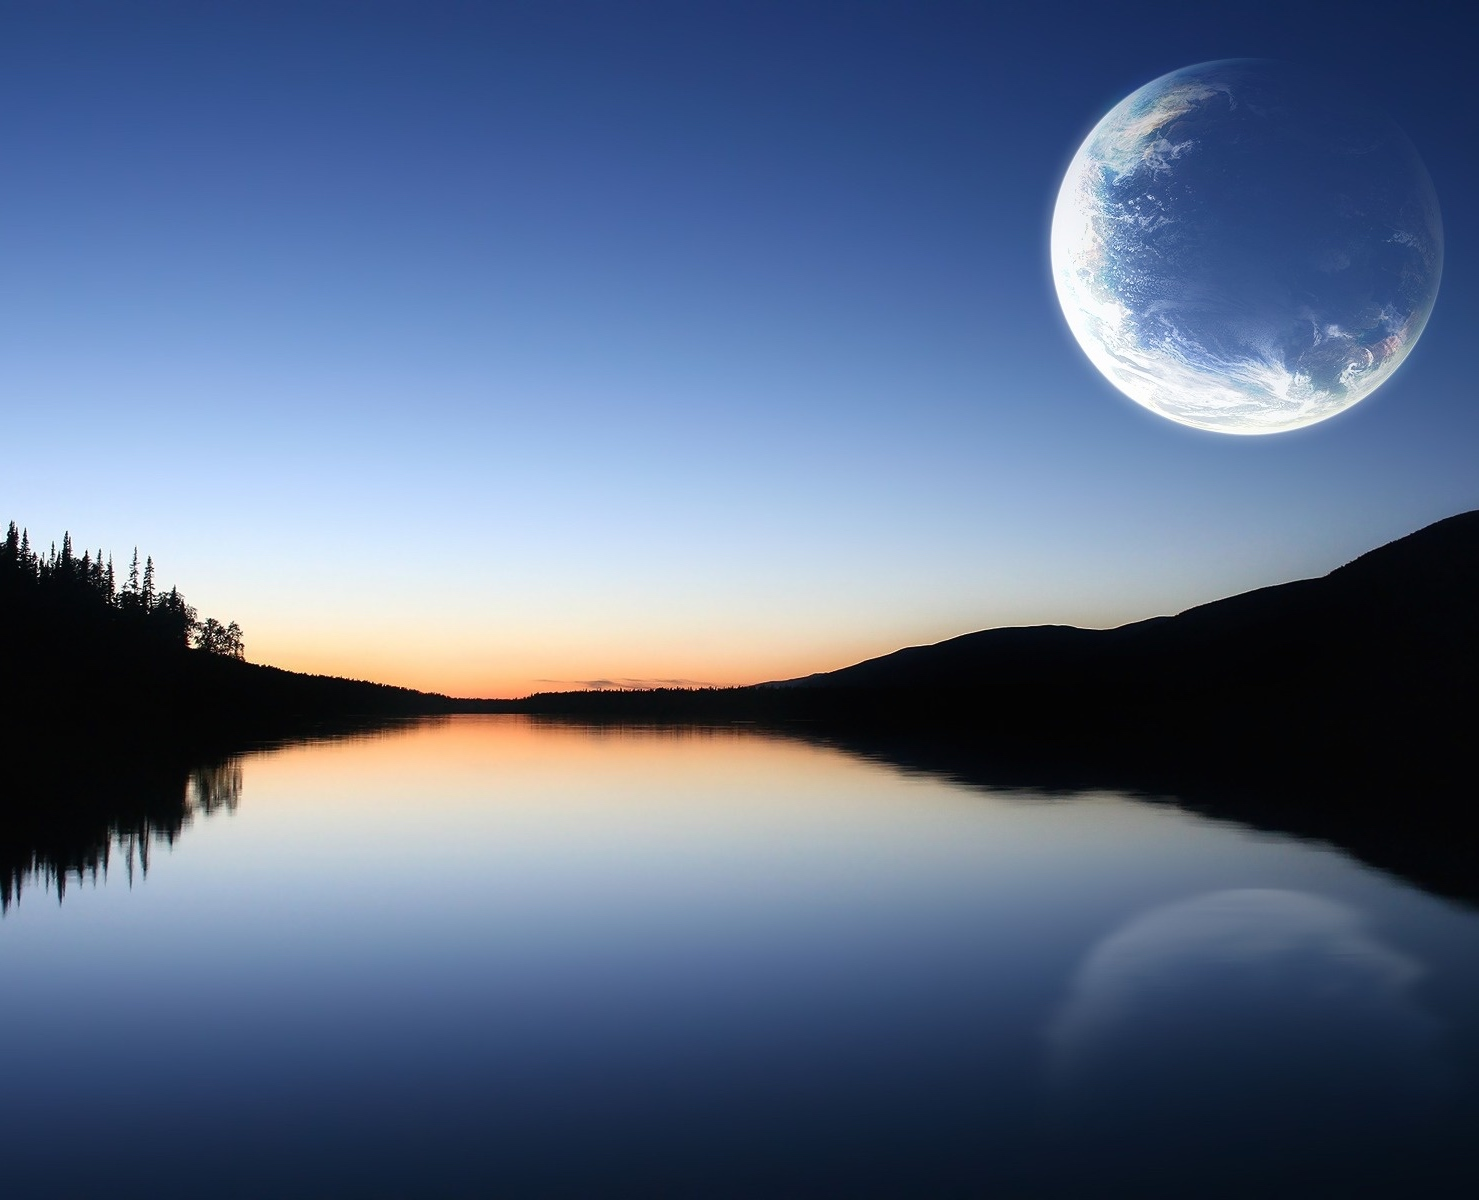 Amazing Tranquility Pictures & Backgrounds